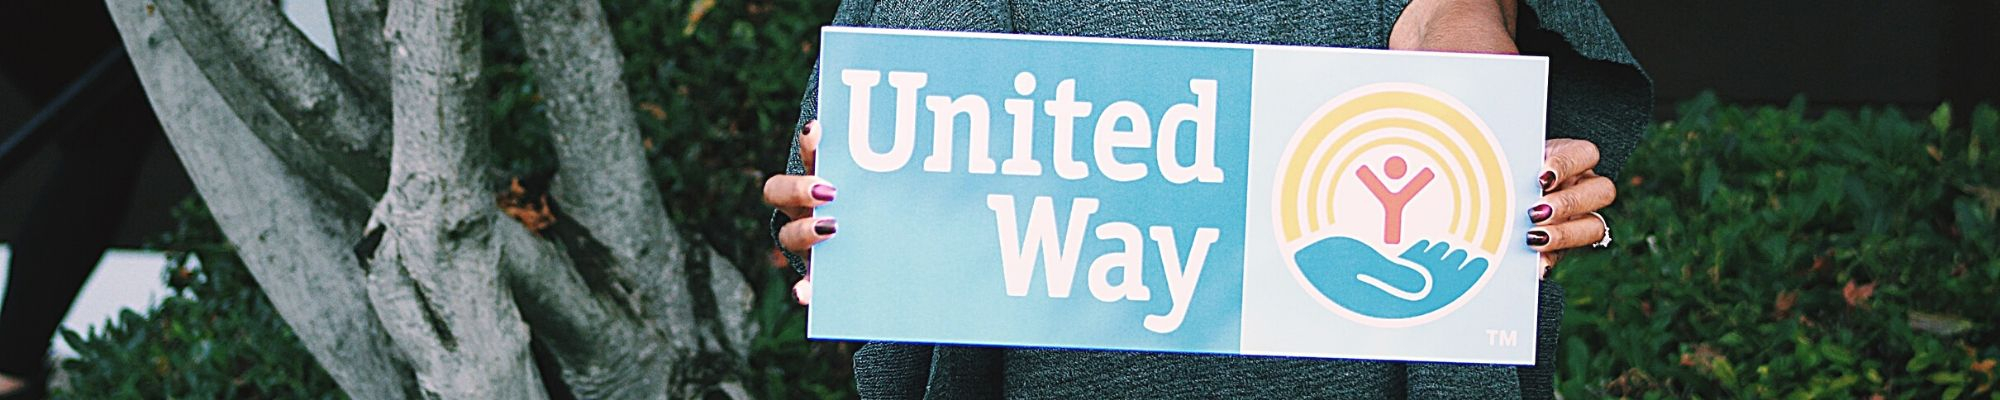 Our Mission United Way